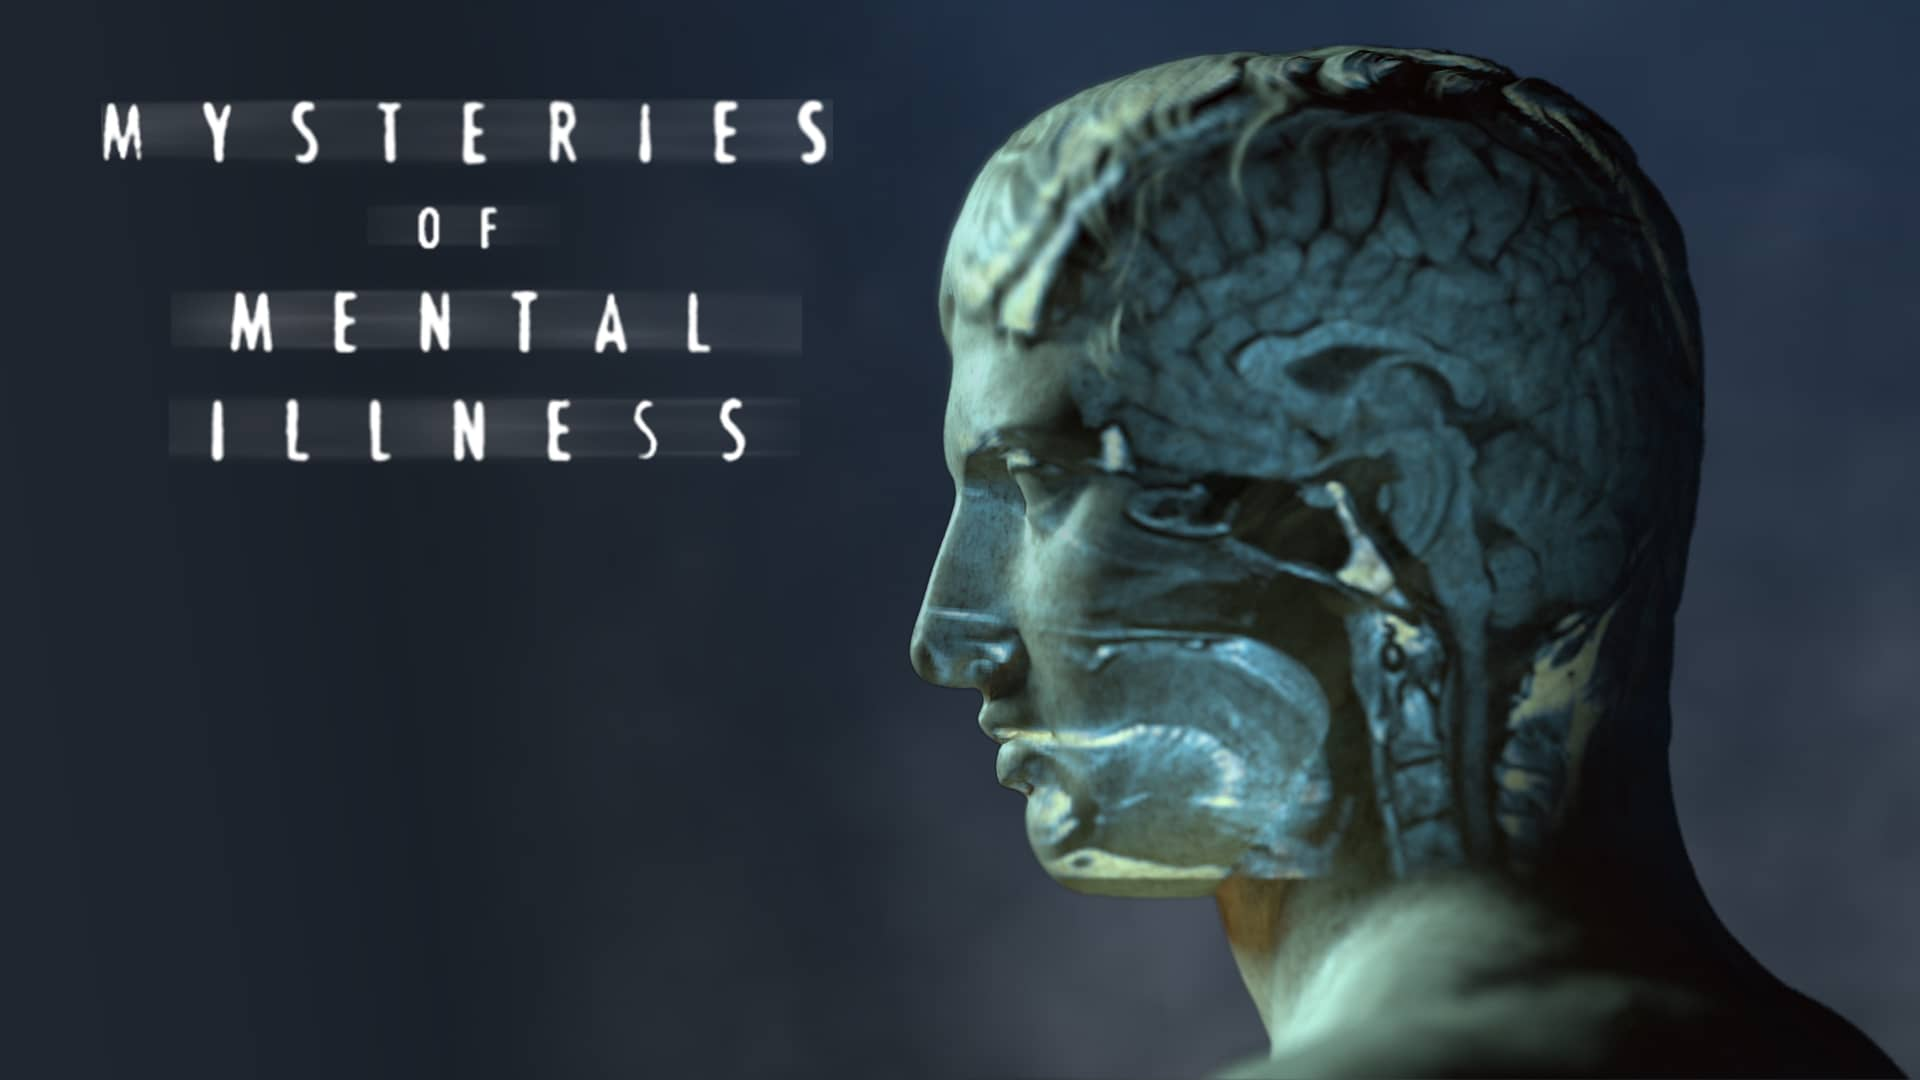 Mental Wellness Center Partners with PBS to Host Virtual Event for Mysteries of Mental Illness Docuseries title=